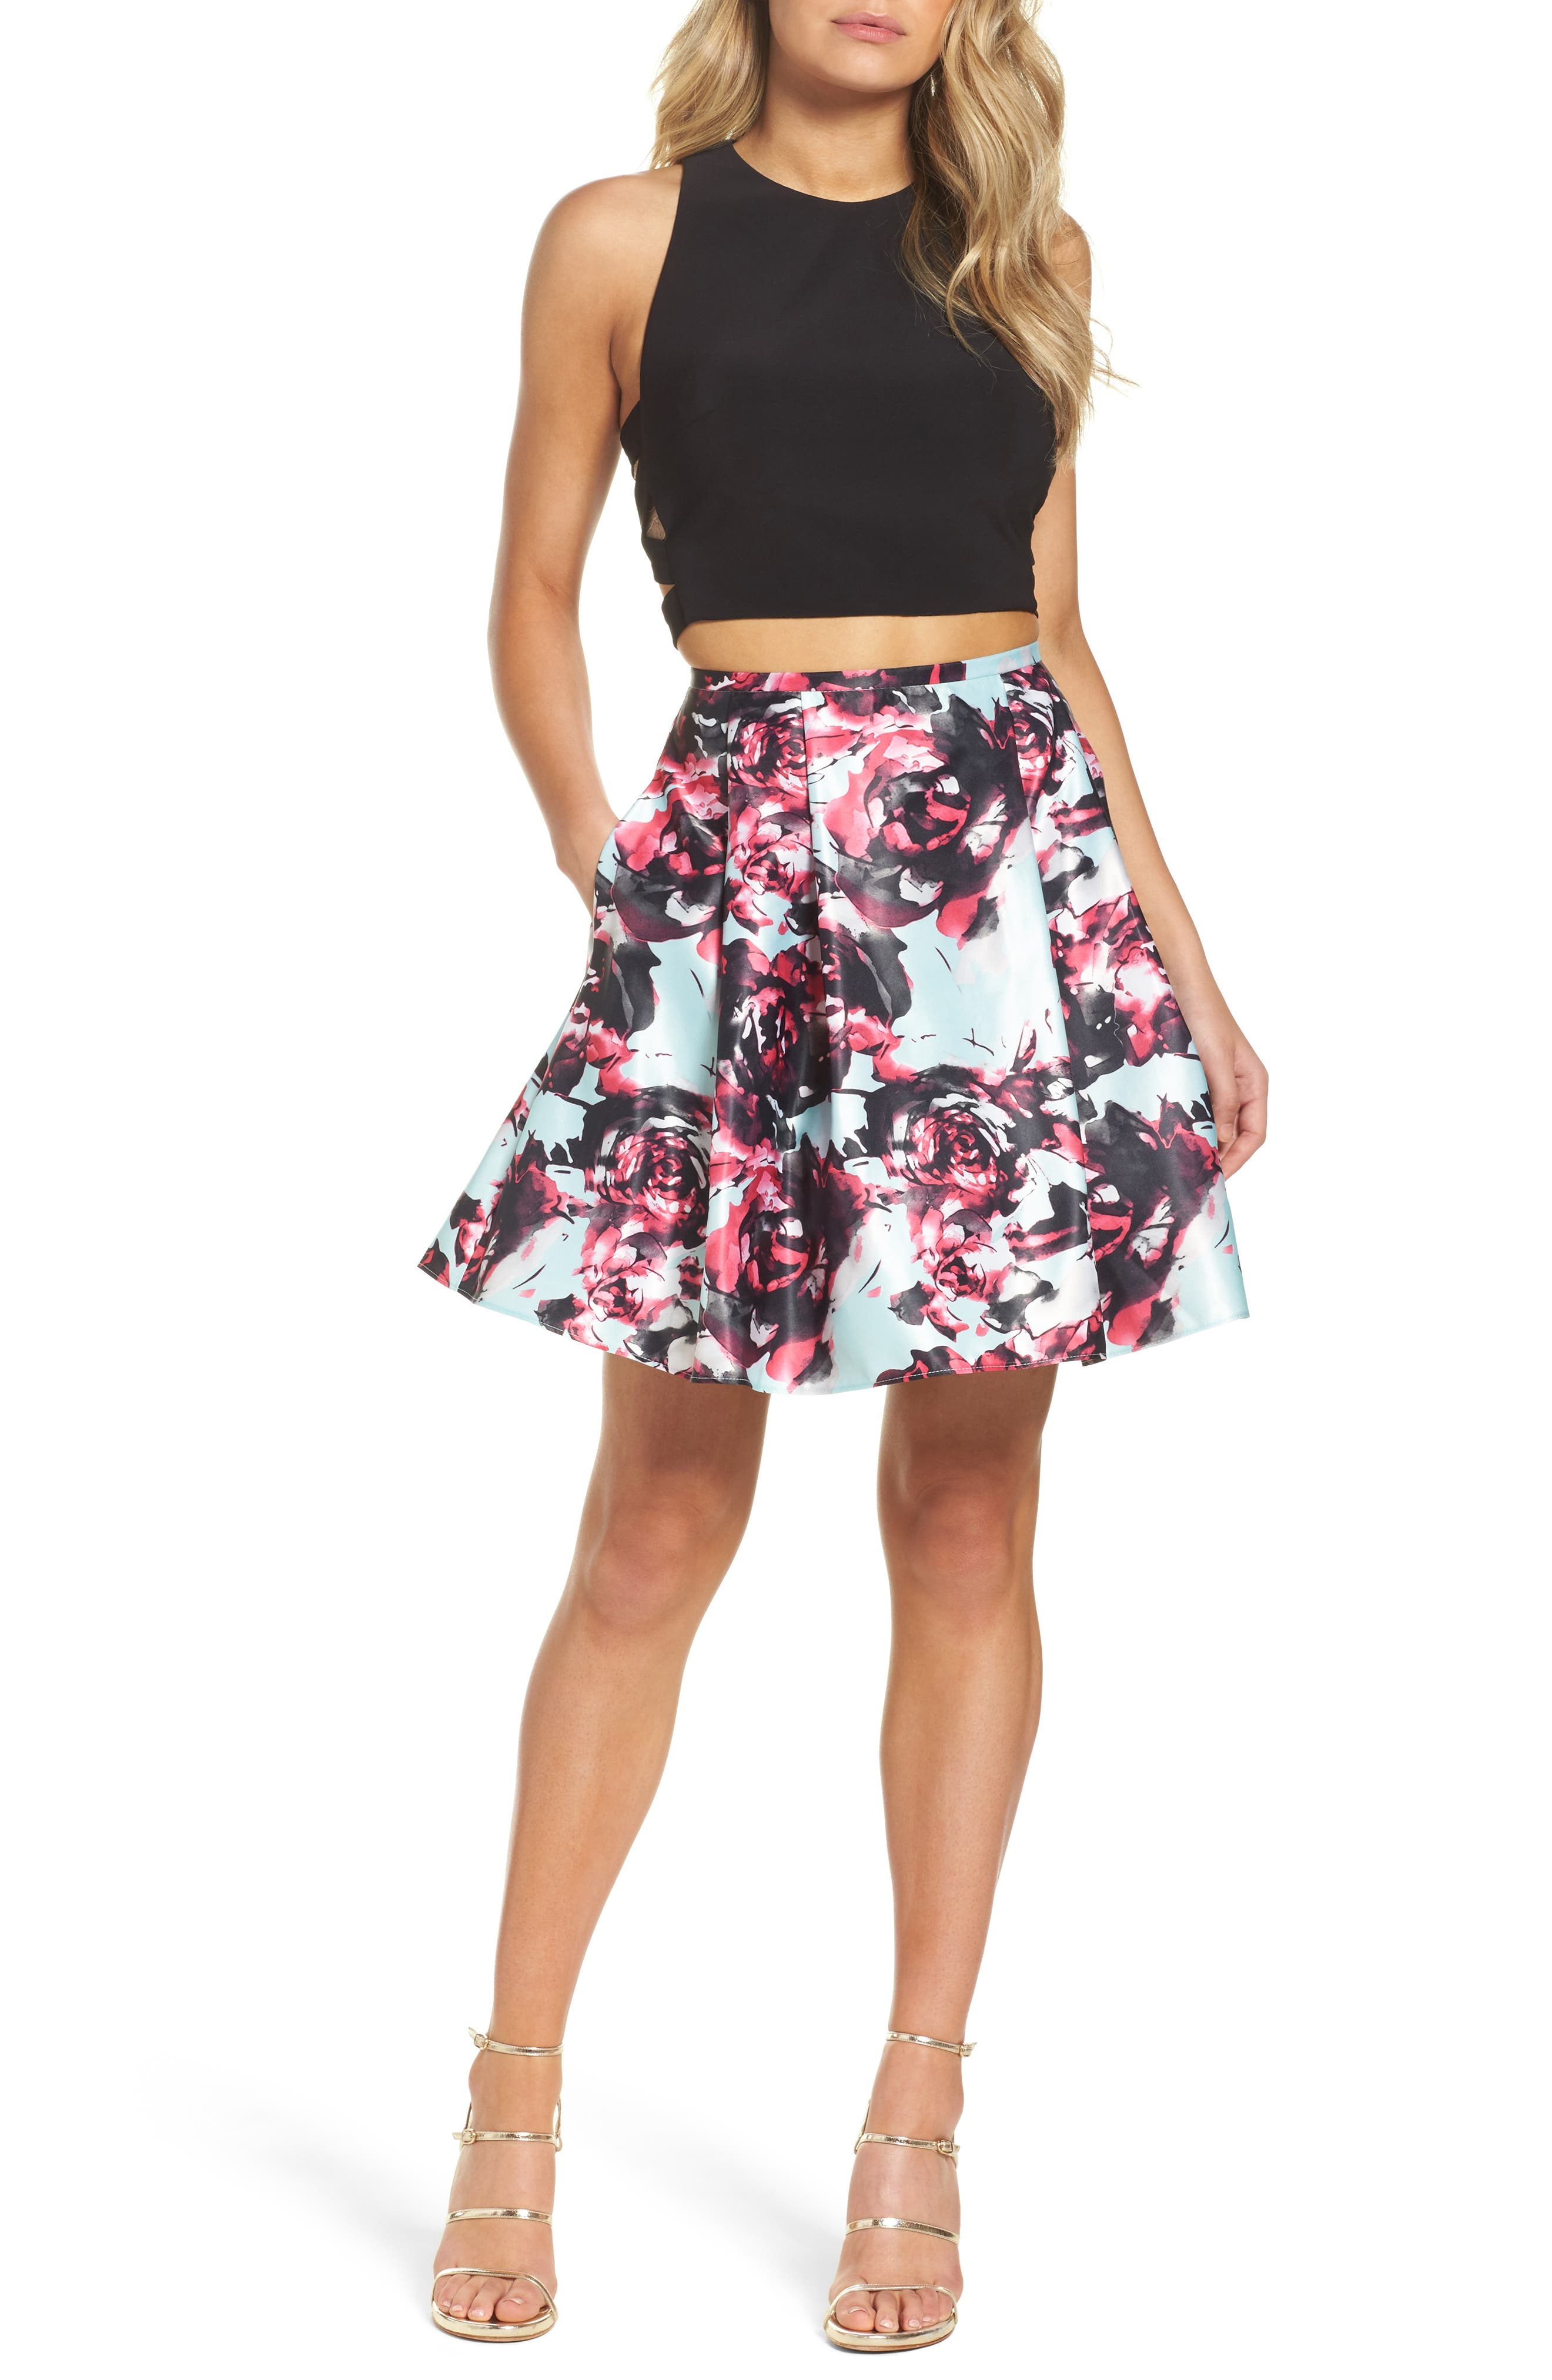 Blondie Nites Strappy Floral Two-Piece Dress